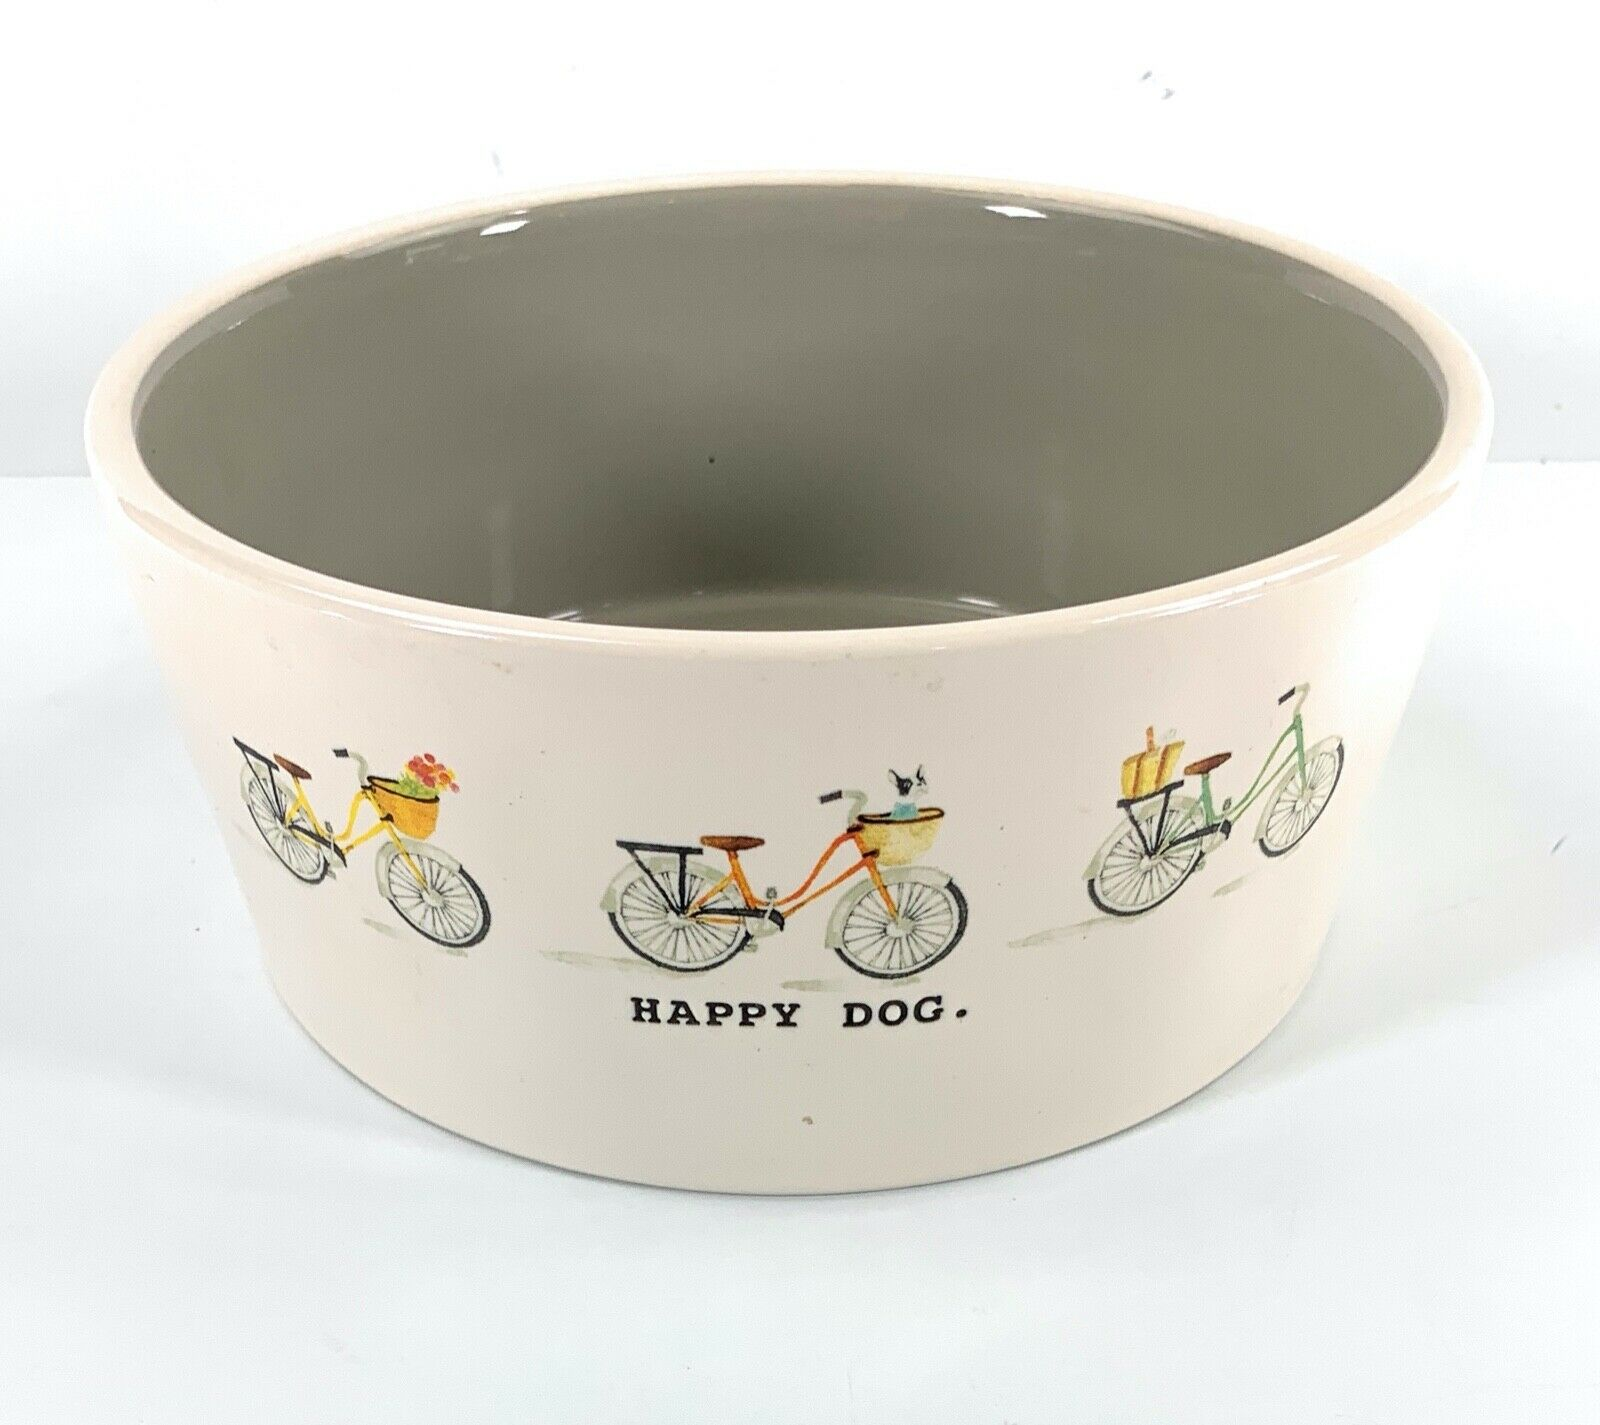 Rae Dunn Artisan Collection Pet Food Pottery Bowl Gray Taupe Happy Dog Bicycles